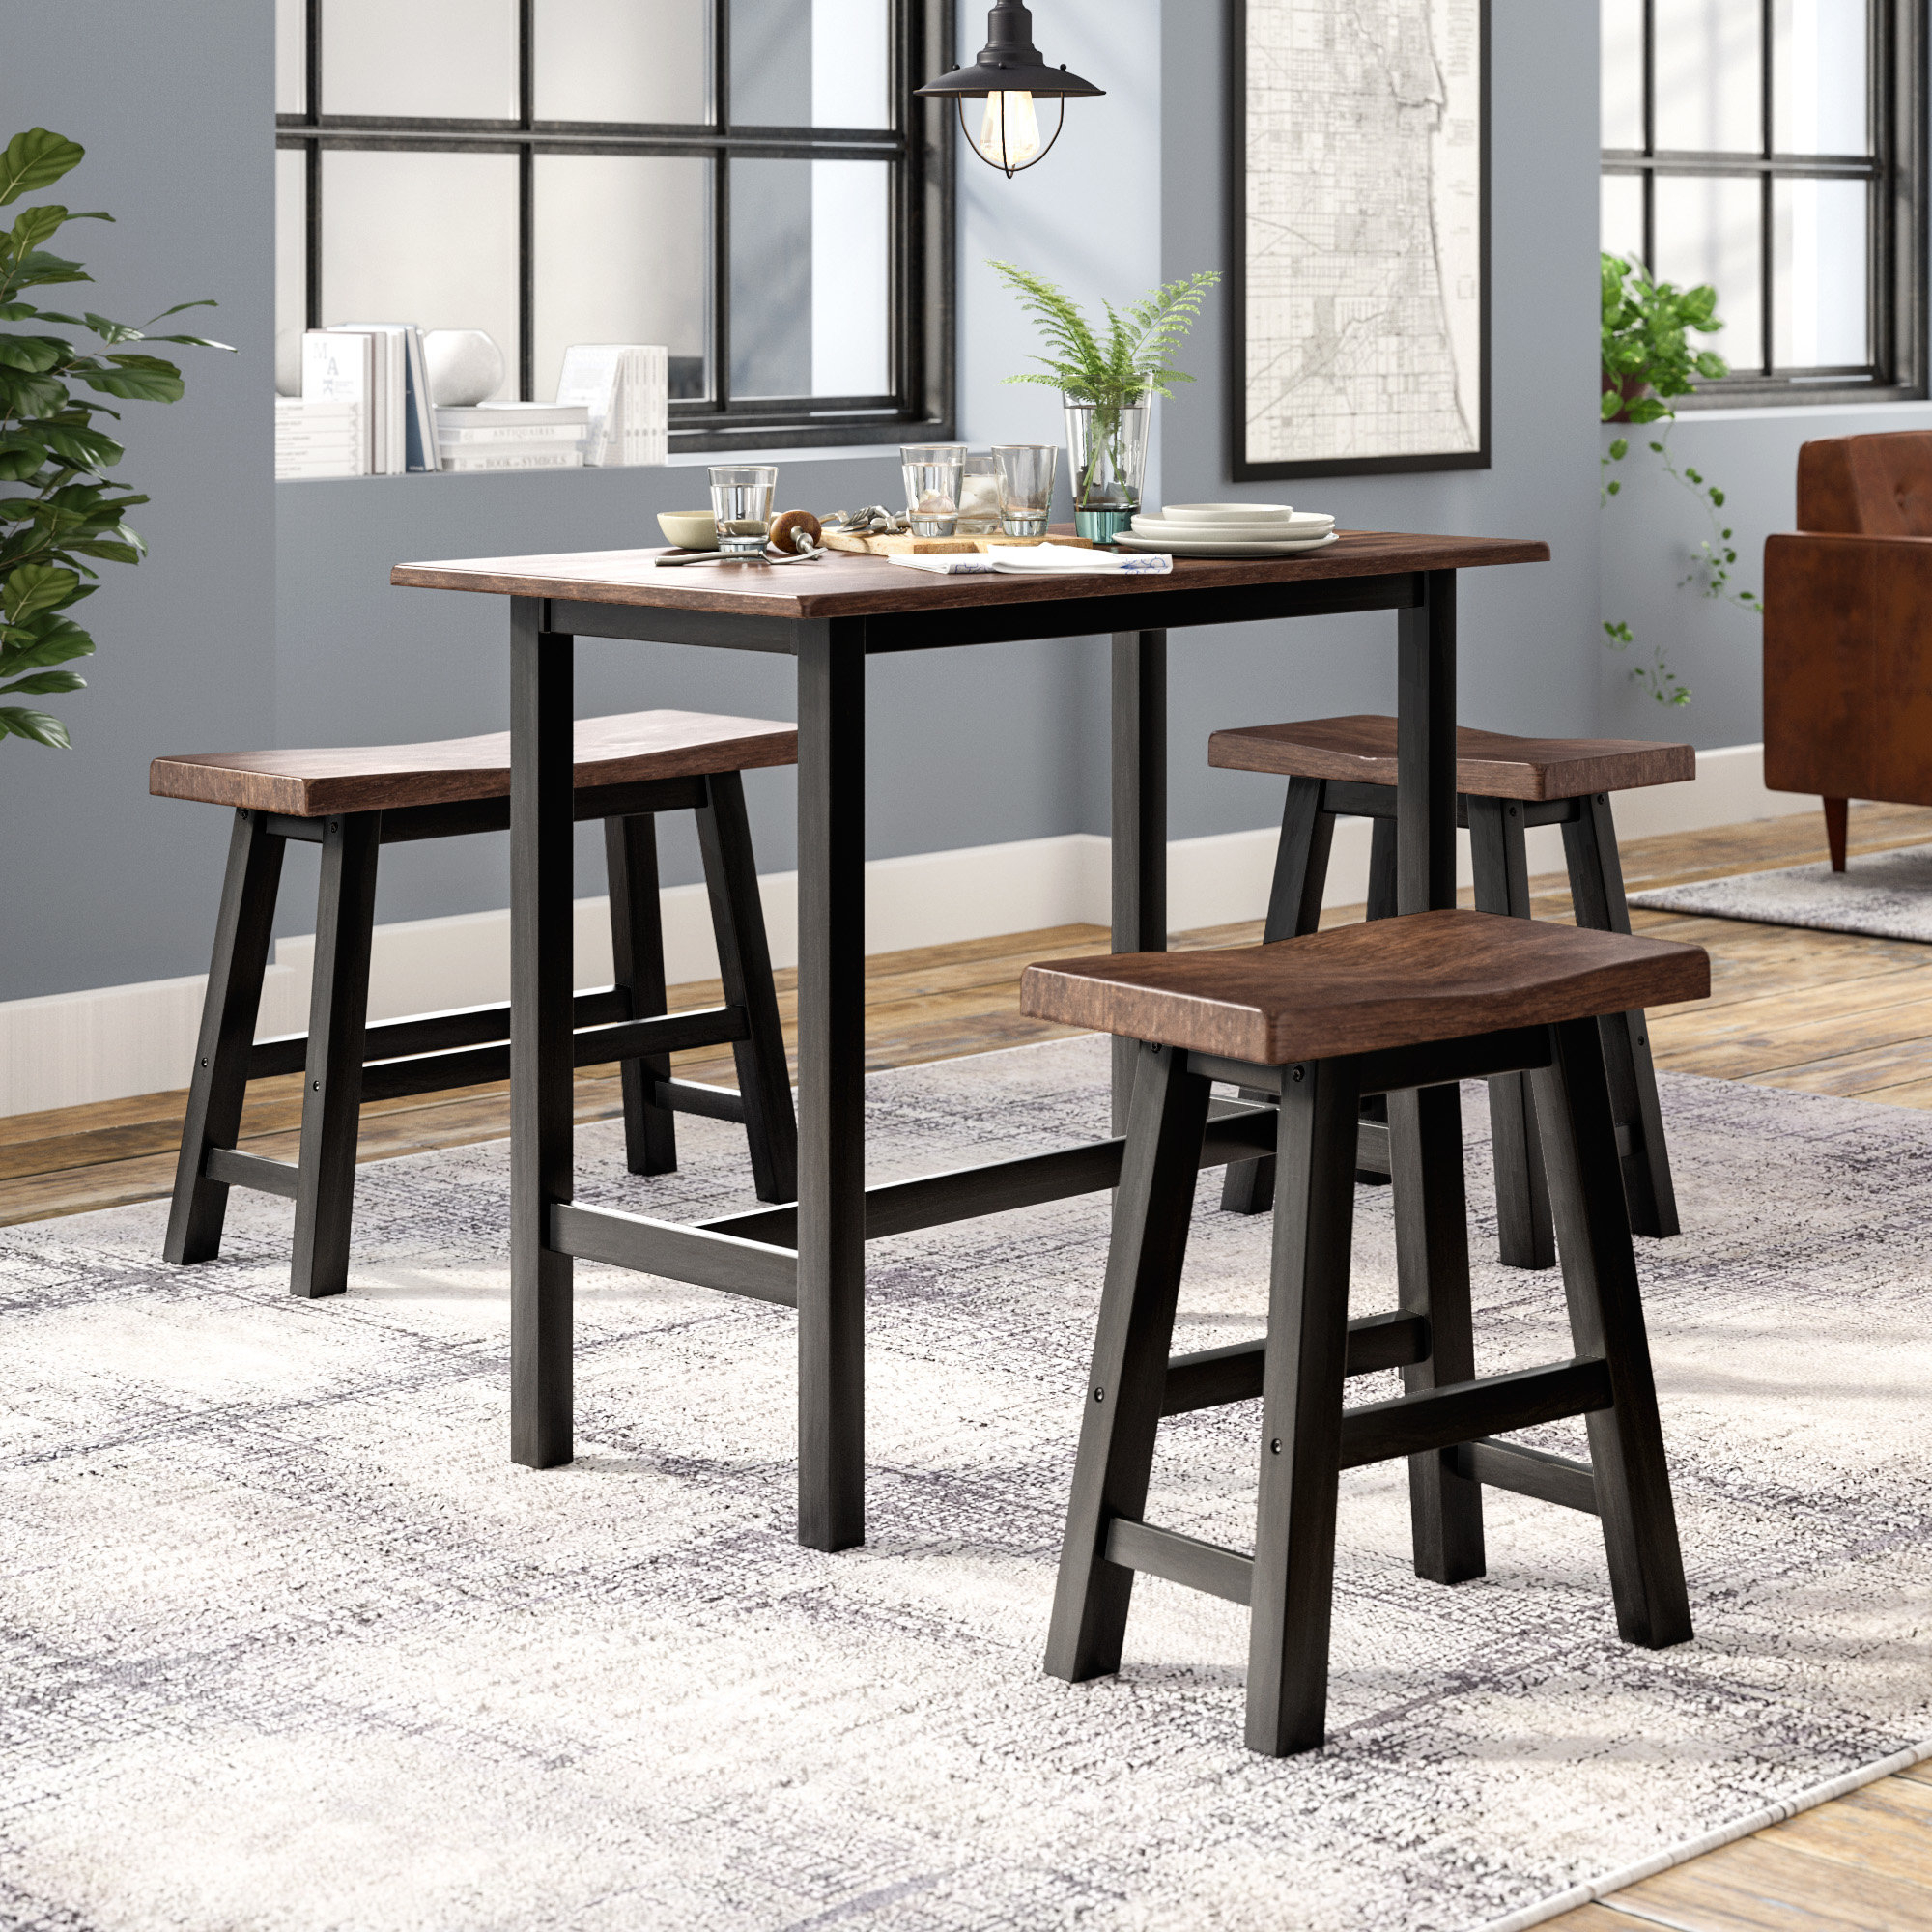 Chelsey 4 Piece Dining Set Throughout Recent Berrios 3 Piece Counter Height Dining Sets (View 7 of 20)